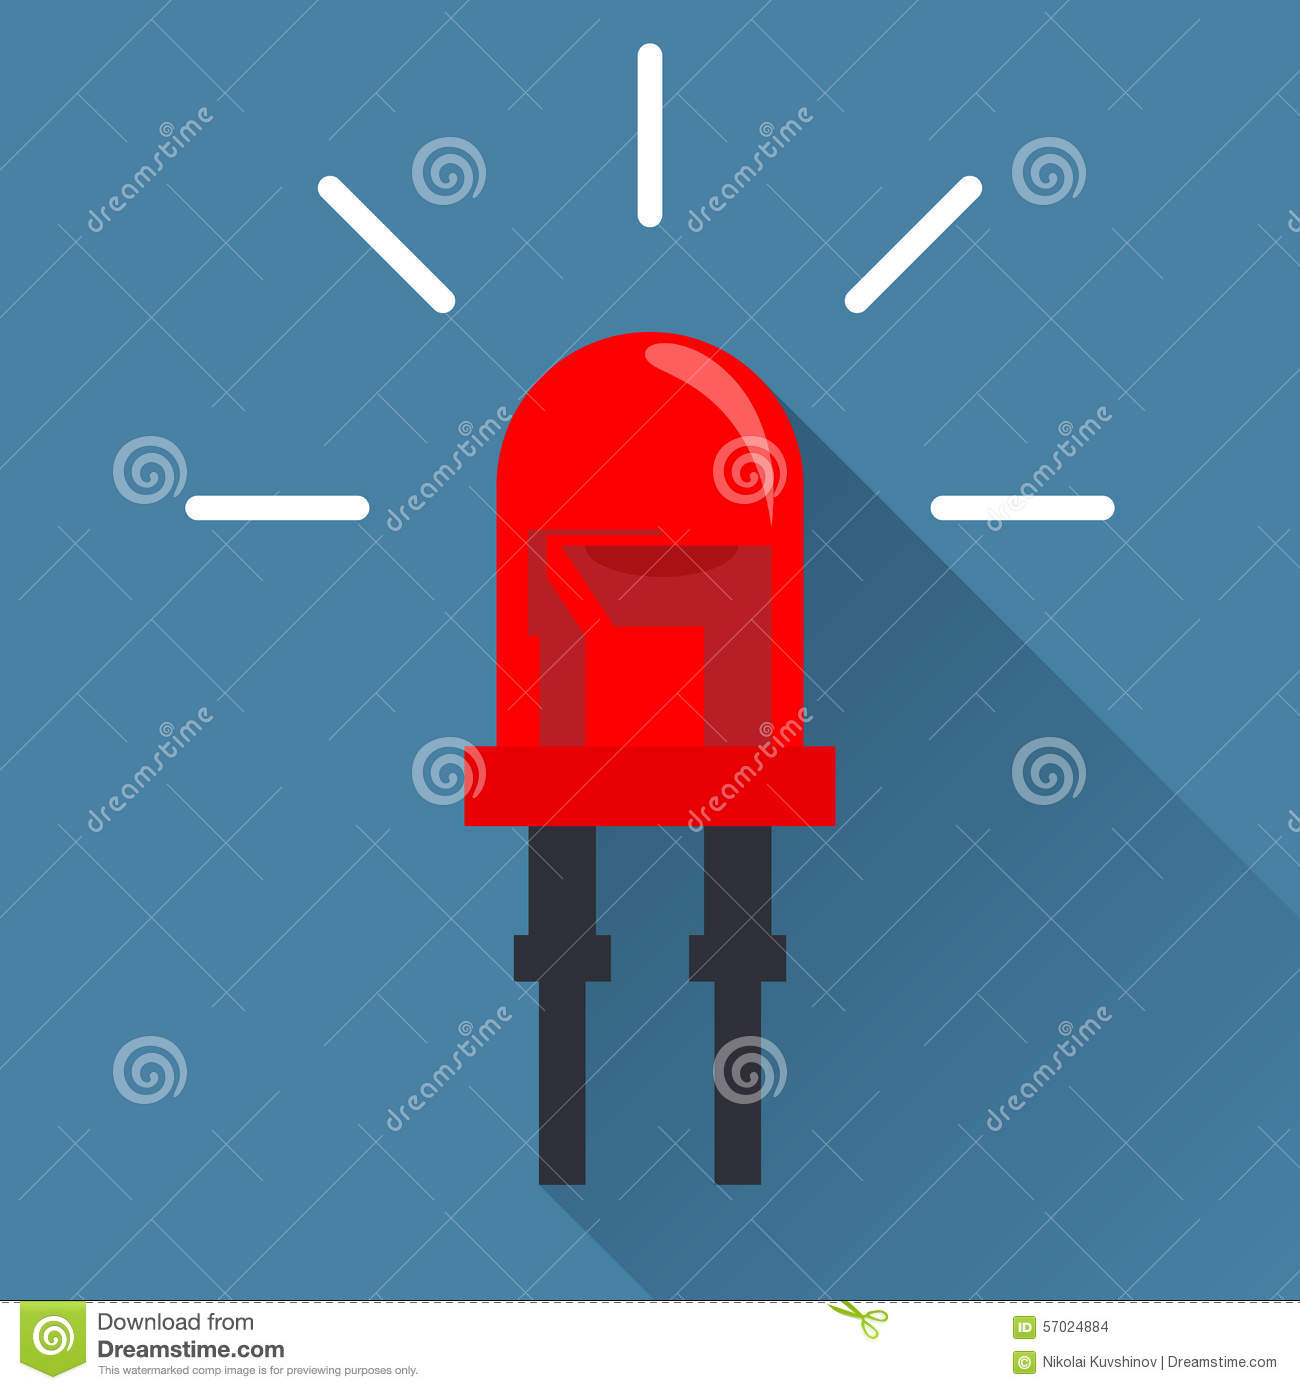 Red light emitting diode flat design icon with long shadow